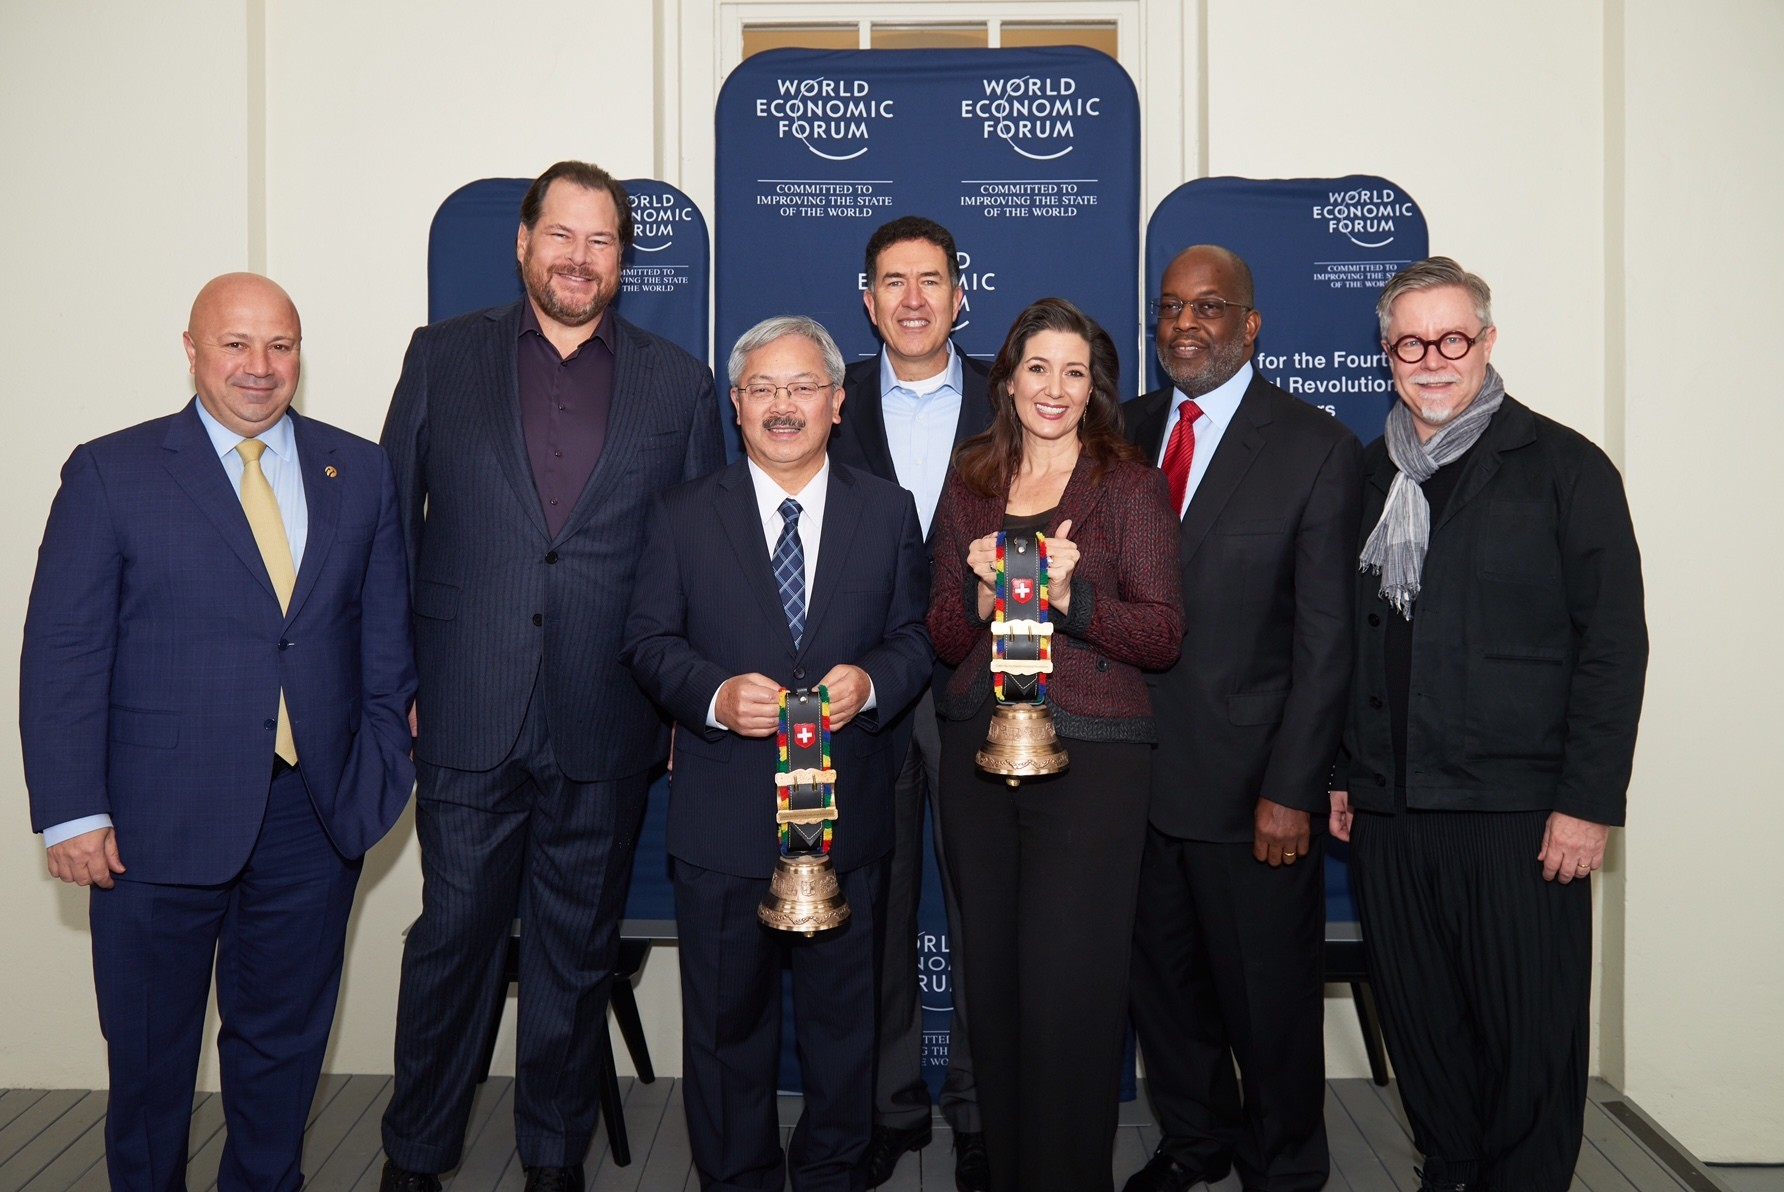 From left to right: CEO of Turkcell Kaan Terzioğlu, Salesforce CEO Marc Benioff, San Francisco Mayor Ed Lee, Murat Sönmez, Member of the World Economic Forum Managing Board and Head of the new Center, Oakland Mayor Libby Schaaf, CEO of Kaiser Permanente Bernard Tyson, CEO of IDEO Tim Brown